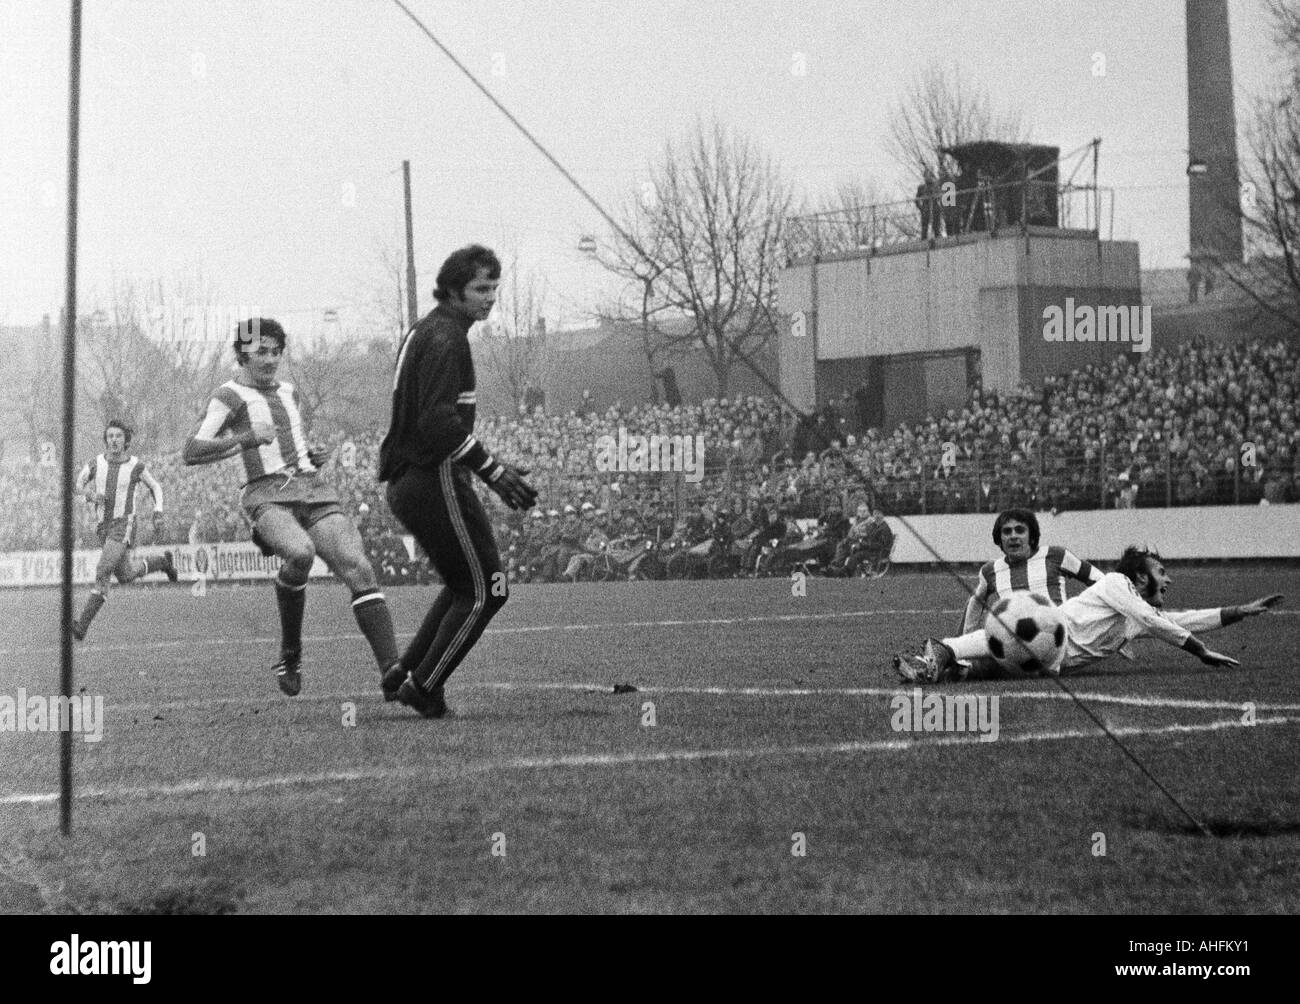 football, Bundesliga, 1971/1972, VfL Bochum versus 1. FC Kaiserslautern 4:2, Stadium at the Castroper Strasse in - Stock Image